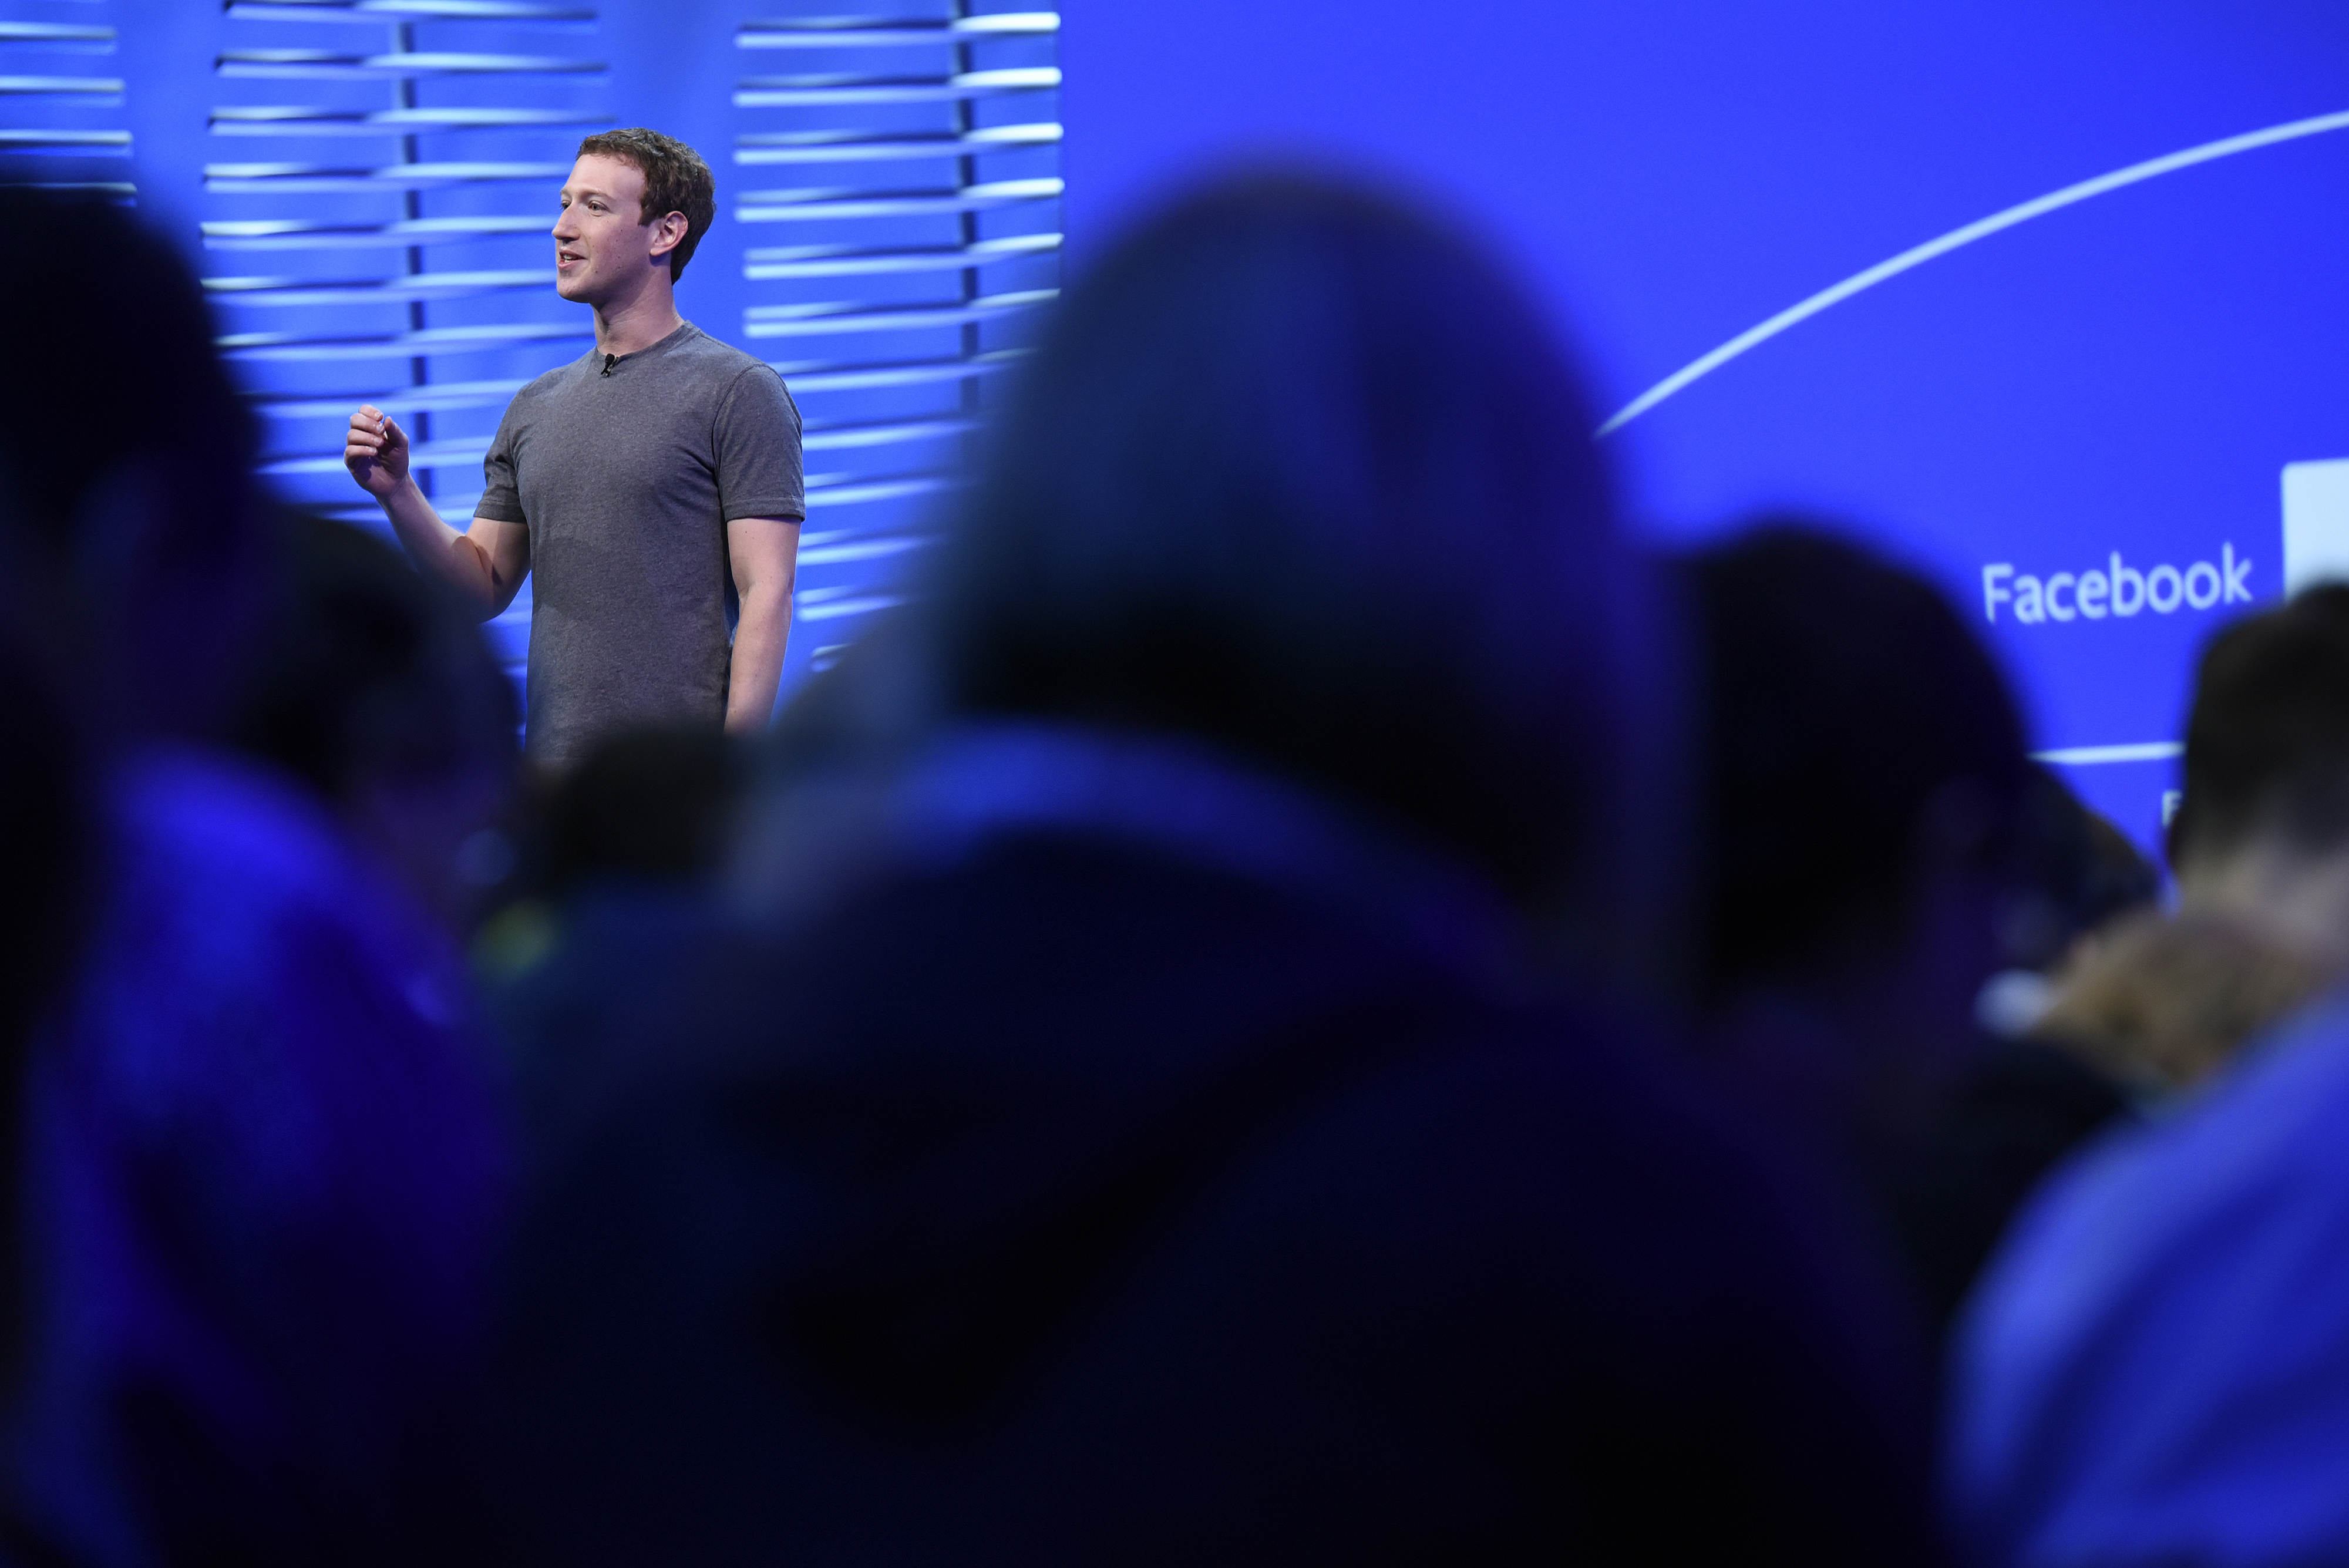 Mark Zuckerberg, founder and CEO of Facebook, speaks during the Facebook F8 Developers Conference in San Francisco on April 12, 2016